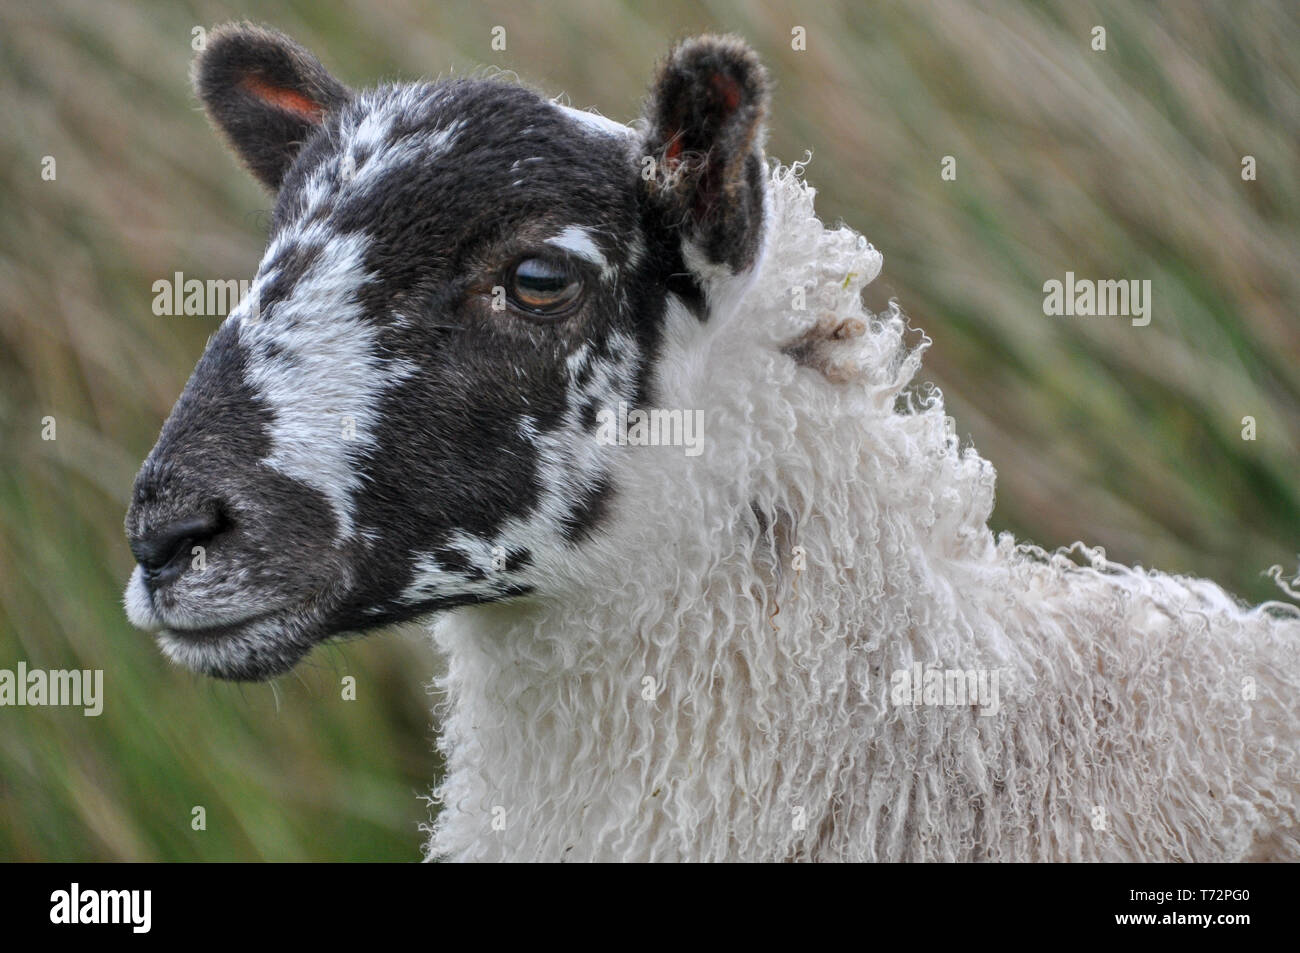 Portrait Of Young Scottish Blackface Sheep In The Moorland